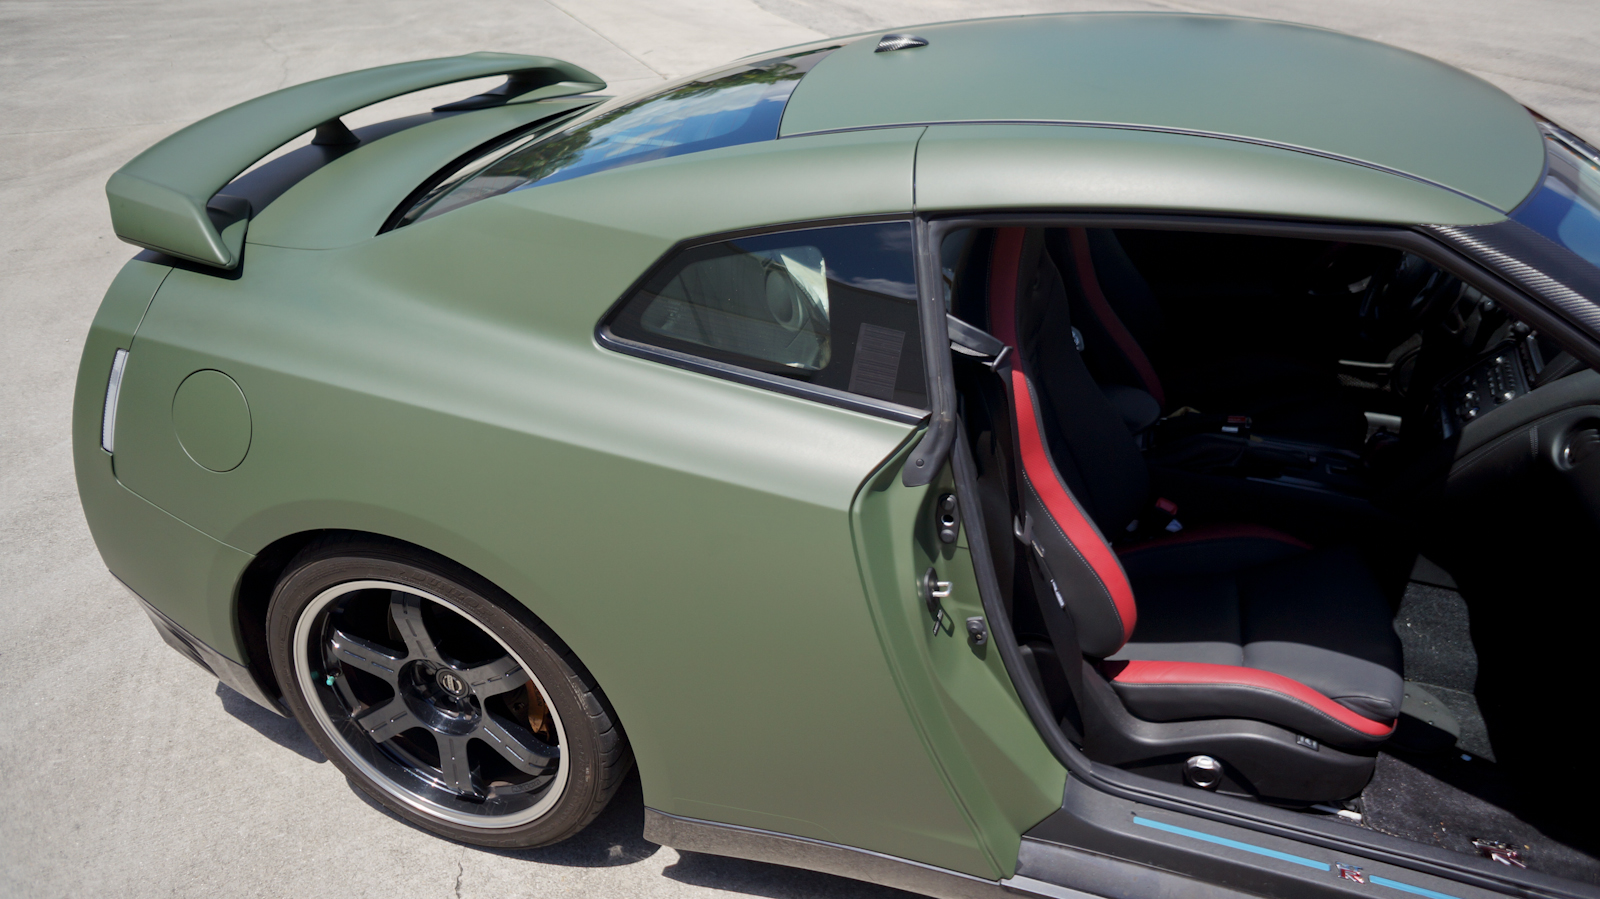 Nissan-GTR-Matte-Green-Car-Wrap.jpg